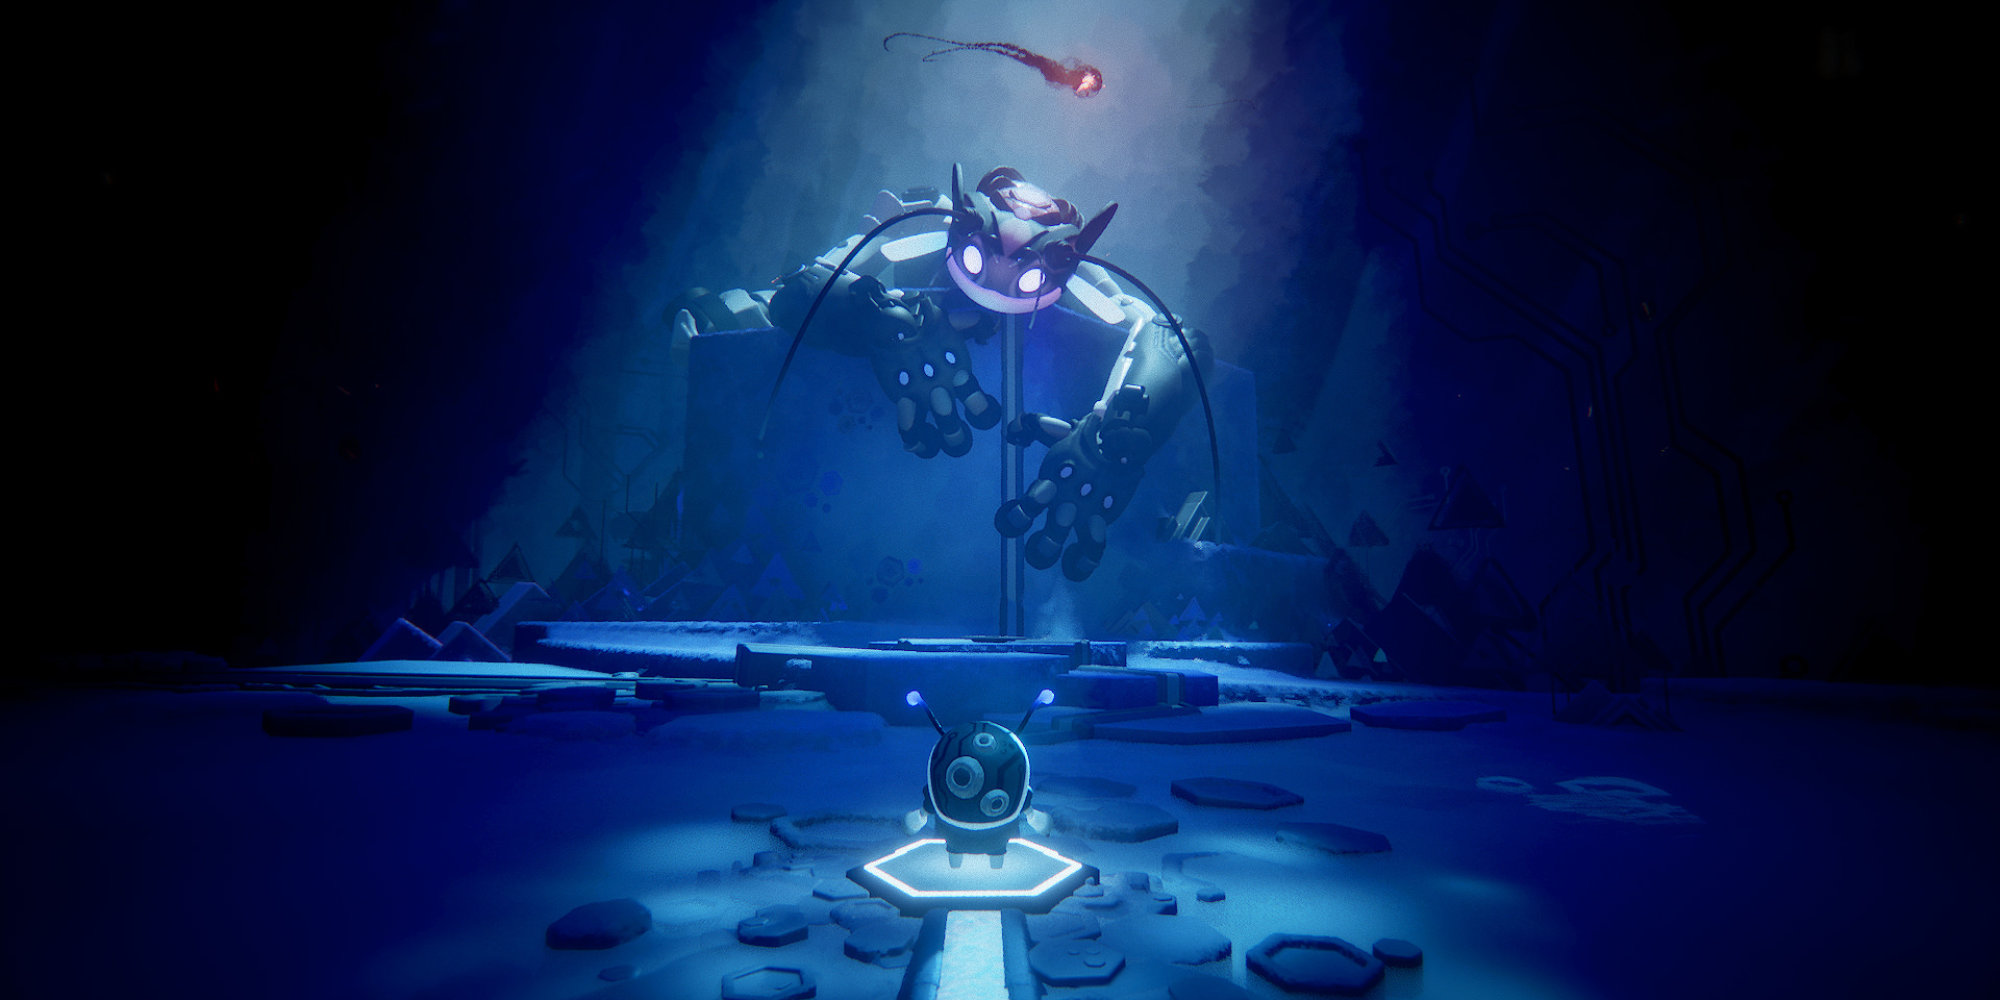 LittleBigPlanet follow-up, 'Dreams', is set to get Early Access status soon